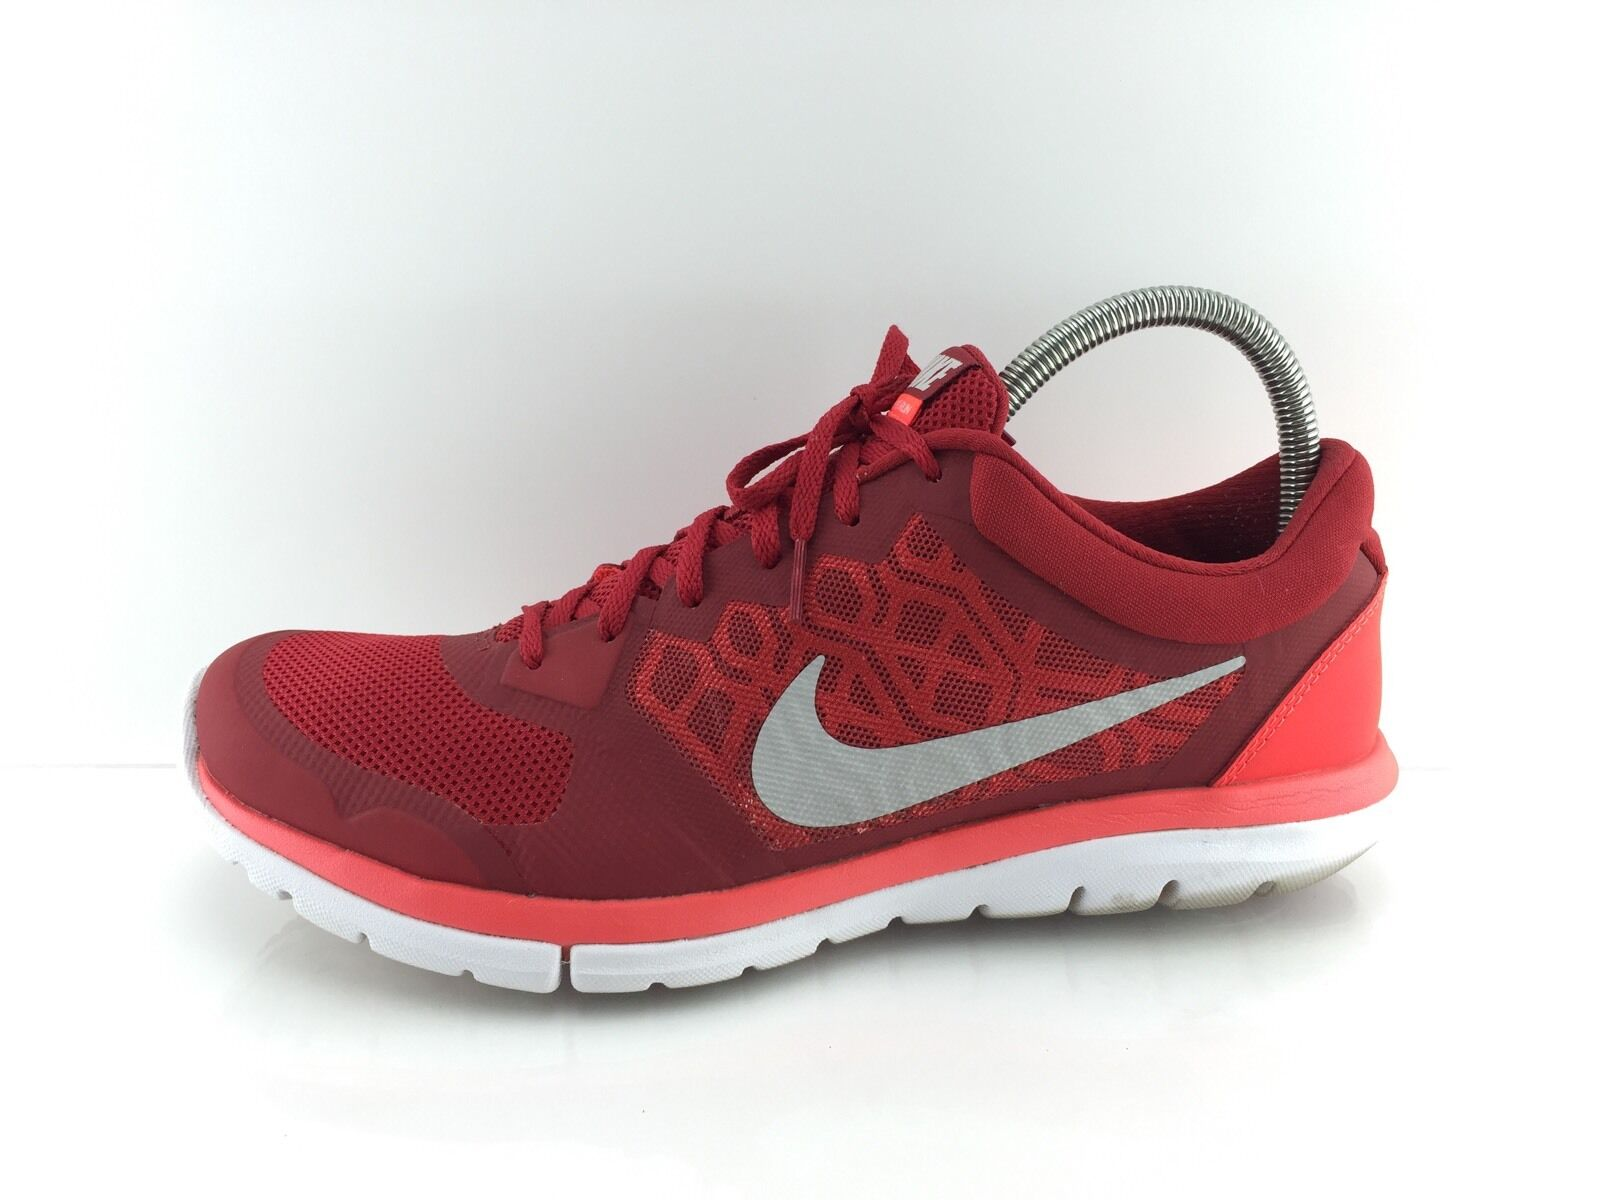 Nike Flex 2015 Men's Red Athletic Shoes 10 Seasonal price cuts, discount benefits